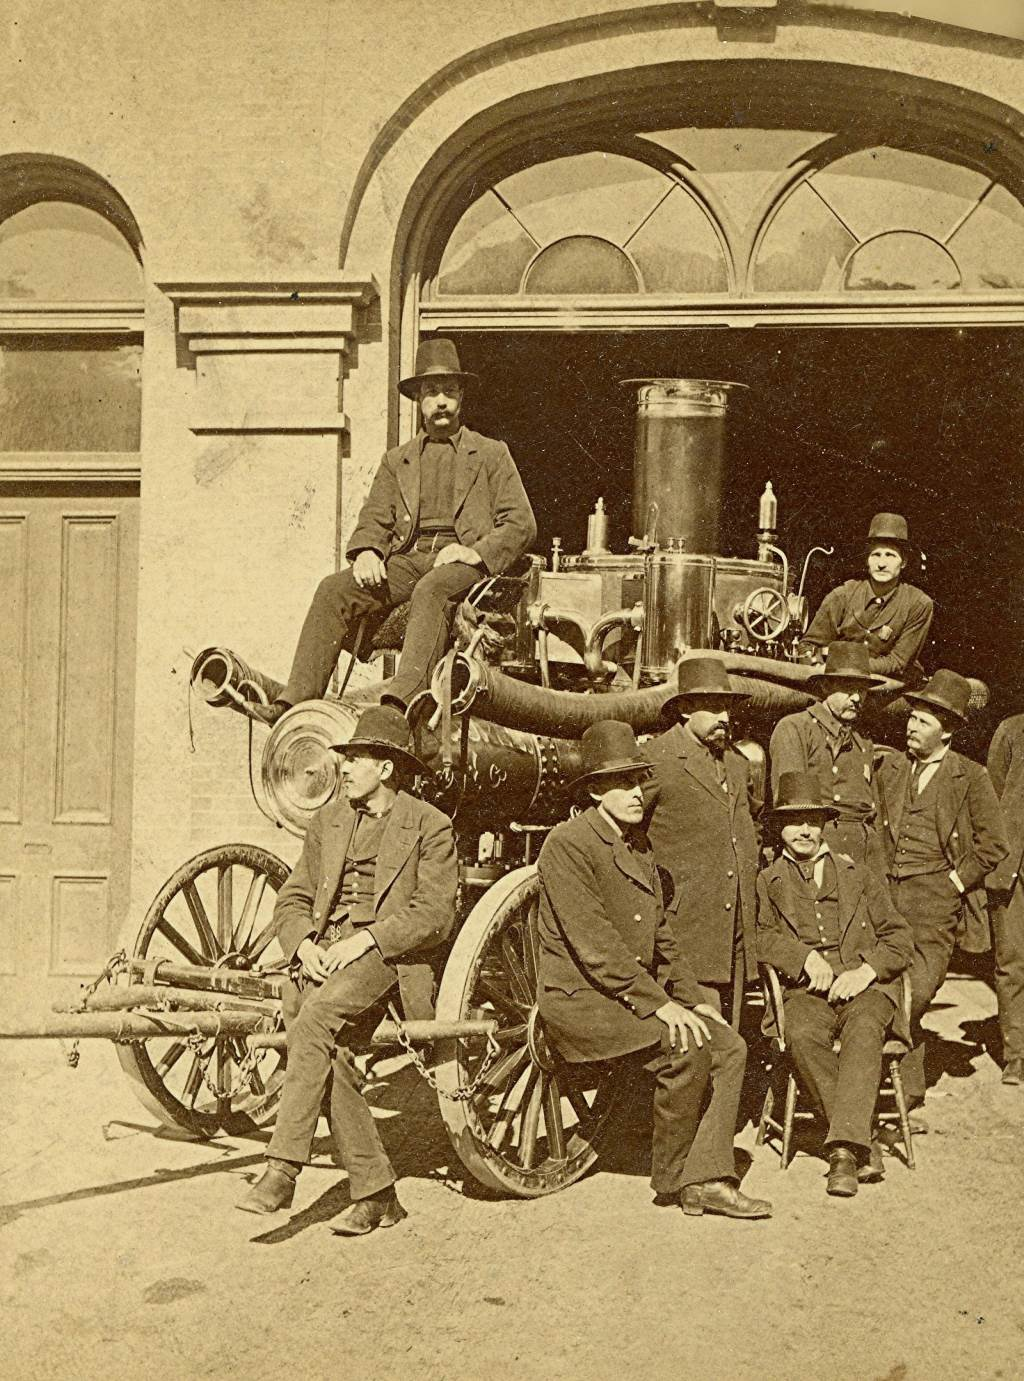 Fire Fighters in Dress Suits, 1880. Image courtesy of Jeff Beutner.